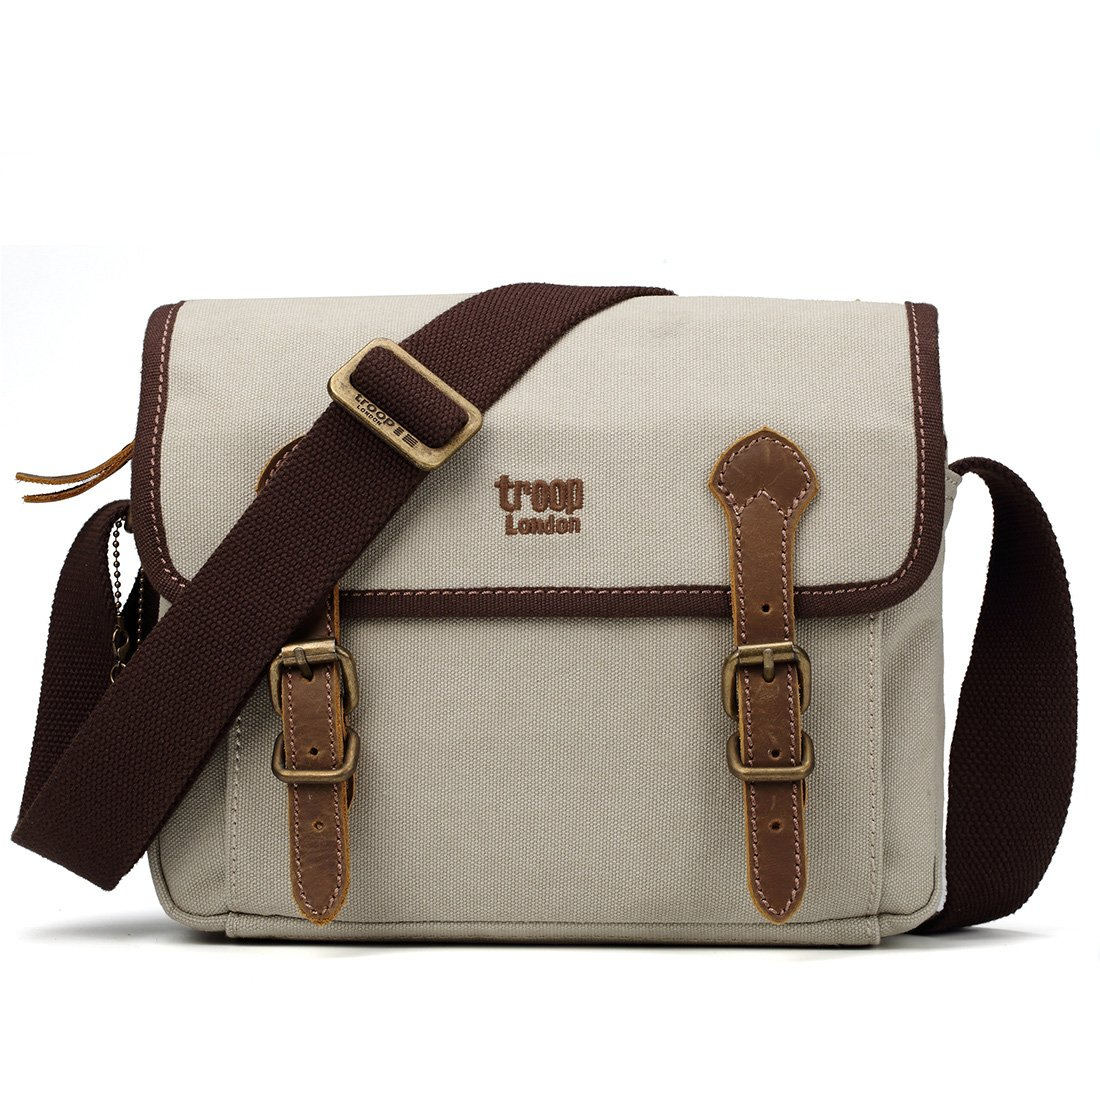 c41925052 TRP0412 Troop London Heritage Canvas Leather Small Messenger Bag, Canvas  Leather Small Satchel (Washed Stone): Amazon.co.uk: Clothing